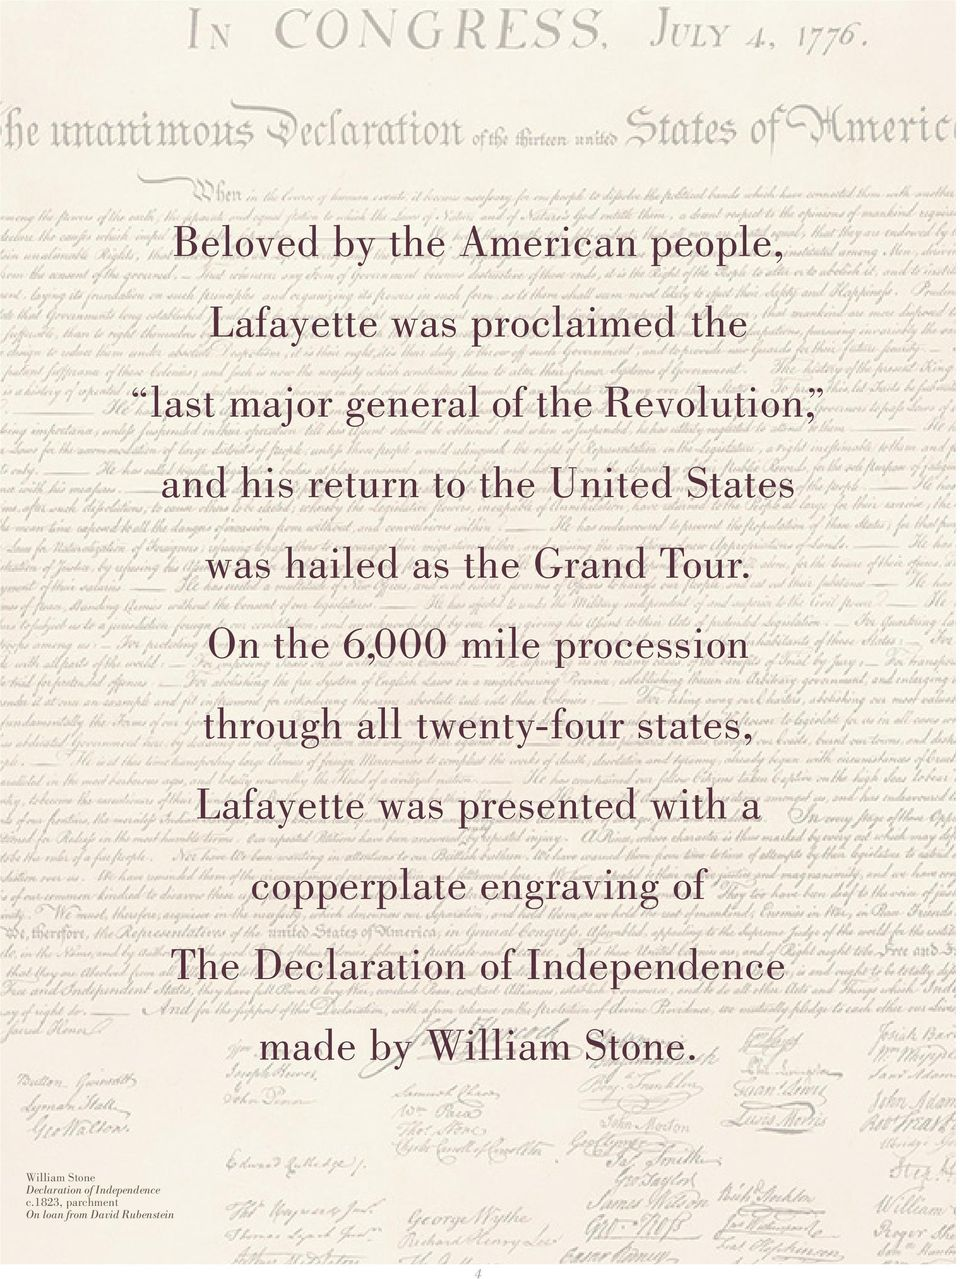 On the 6,000 mile procession through all twenty-four states, Lafayette was presented with a copperplate